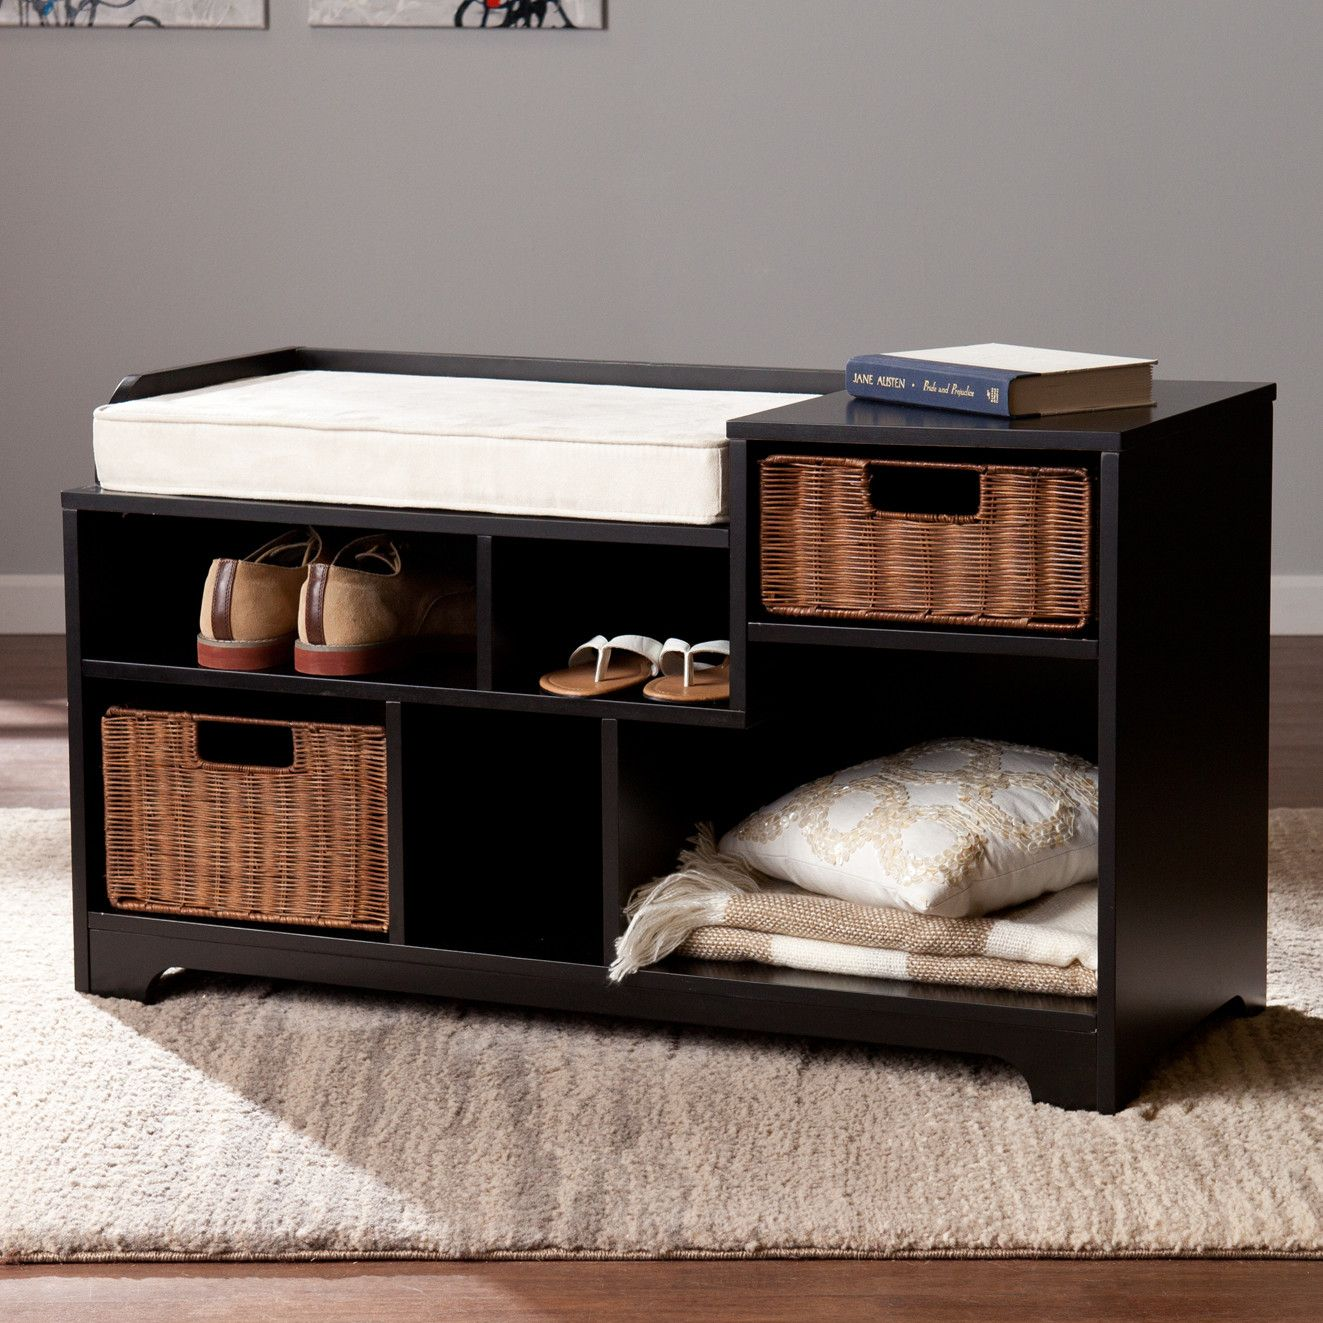 Darby Home Co Conde Upholstered Storage Entryway Bench | Entryway ...